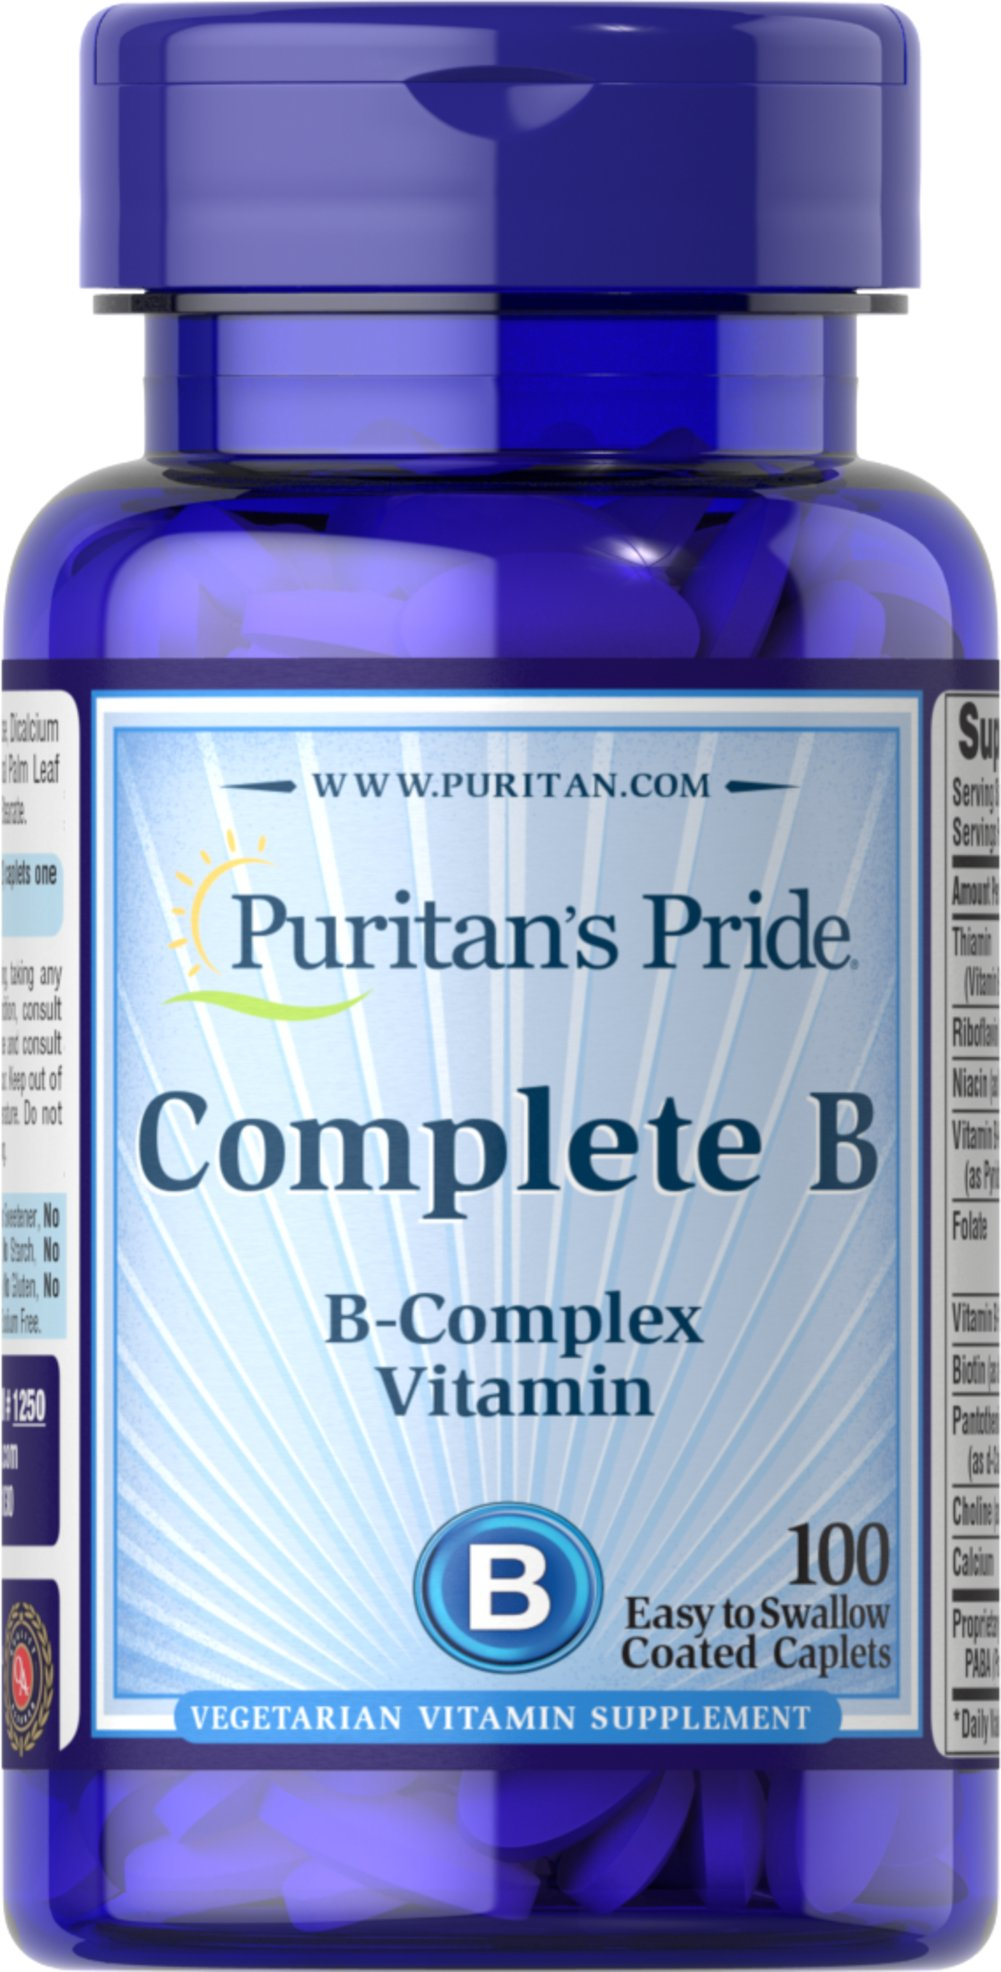 Complete B (Vitamin B Complex) <p>Complete Vitamin B Complex provides seven important B vitamins in just two caplets without sugar, starch, artificial colors or flavors. You get the entire B family in this sodium-free tablet the best B vitamin nutrition you can buy! Complete B can give you the peace of mind you deserve.</p> 100 Caplets  $10.38